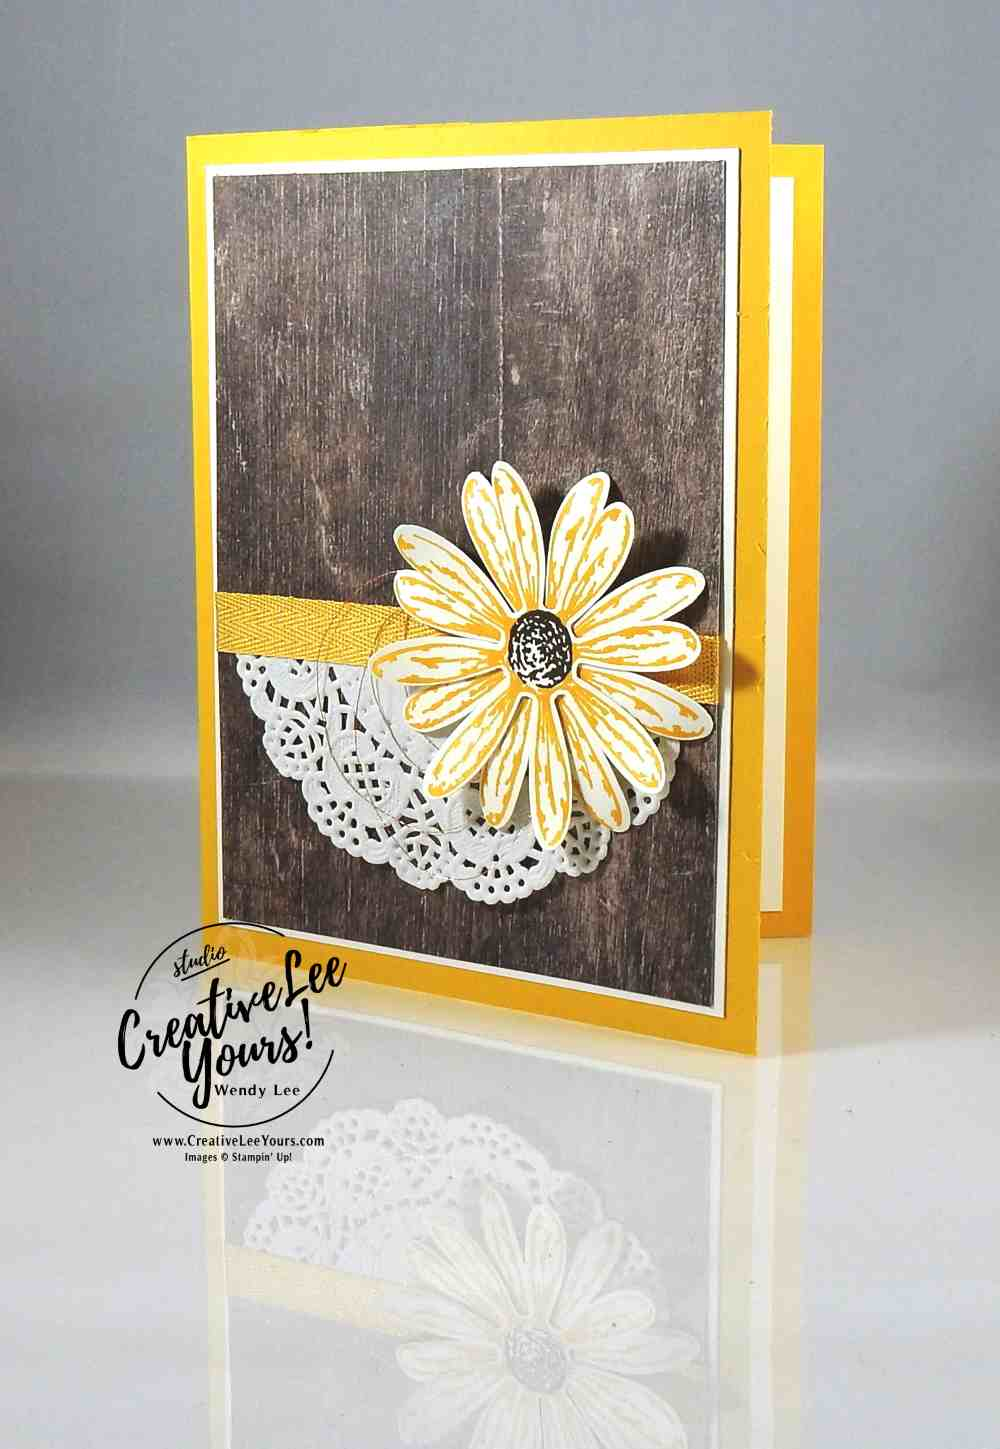 Simple Daisy by Wendy Lee, Stampin Up, #creativeleeyours, creatively yours,rubber stamps, handmade card, stamping, daisy delight stamp set, daisy bundle, diemonds team swap, thank you card